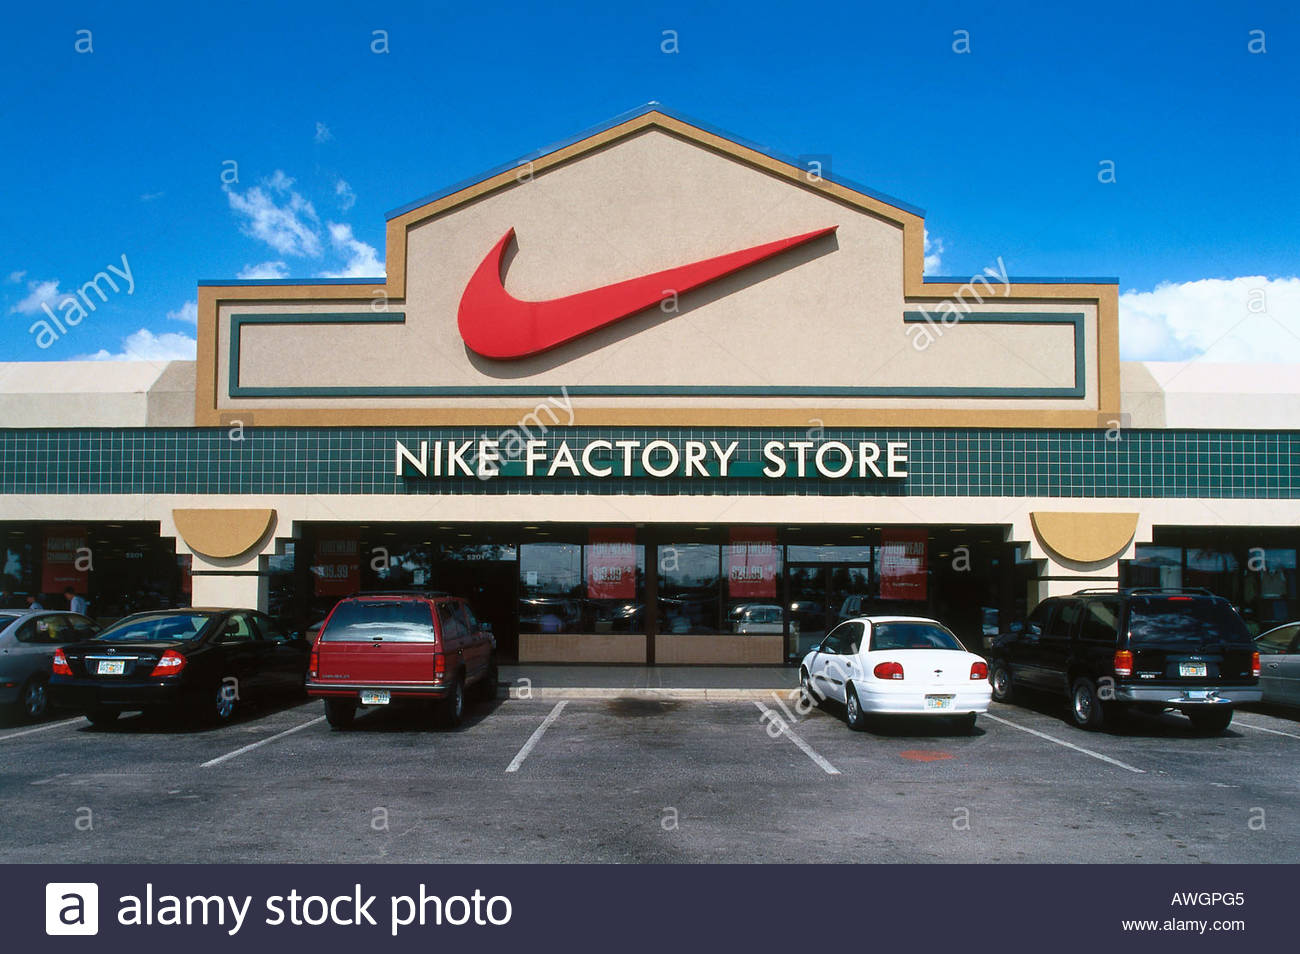 My family and I visited this location and had a great experience. The crowd was minimal because it had just opened. Colton helped us with most of our shoes, and checking out was done quickly.5/5(1).